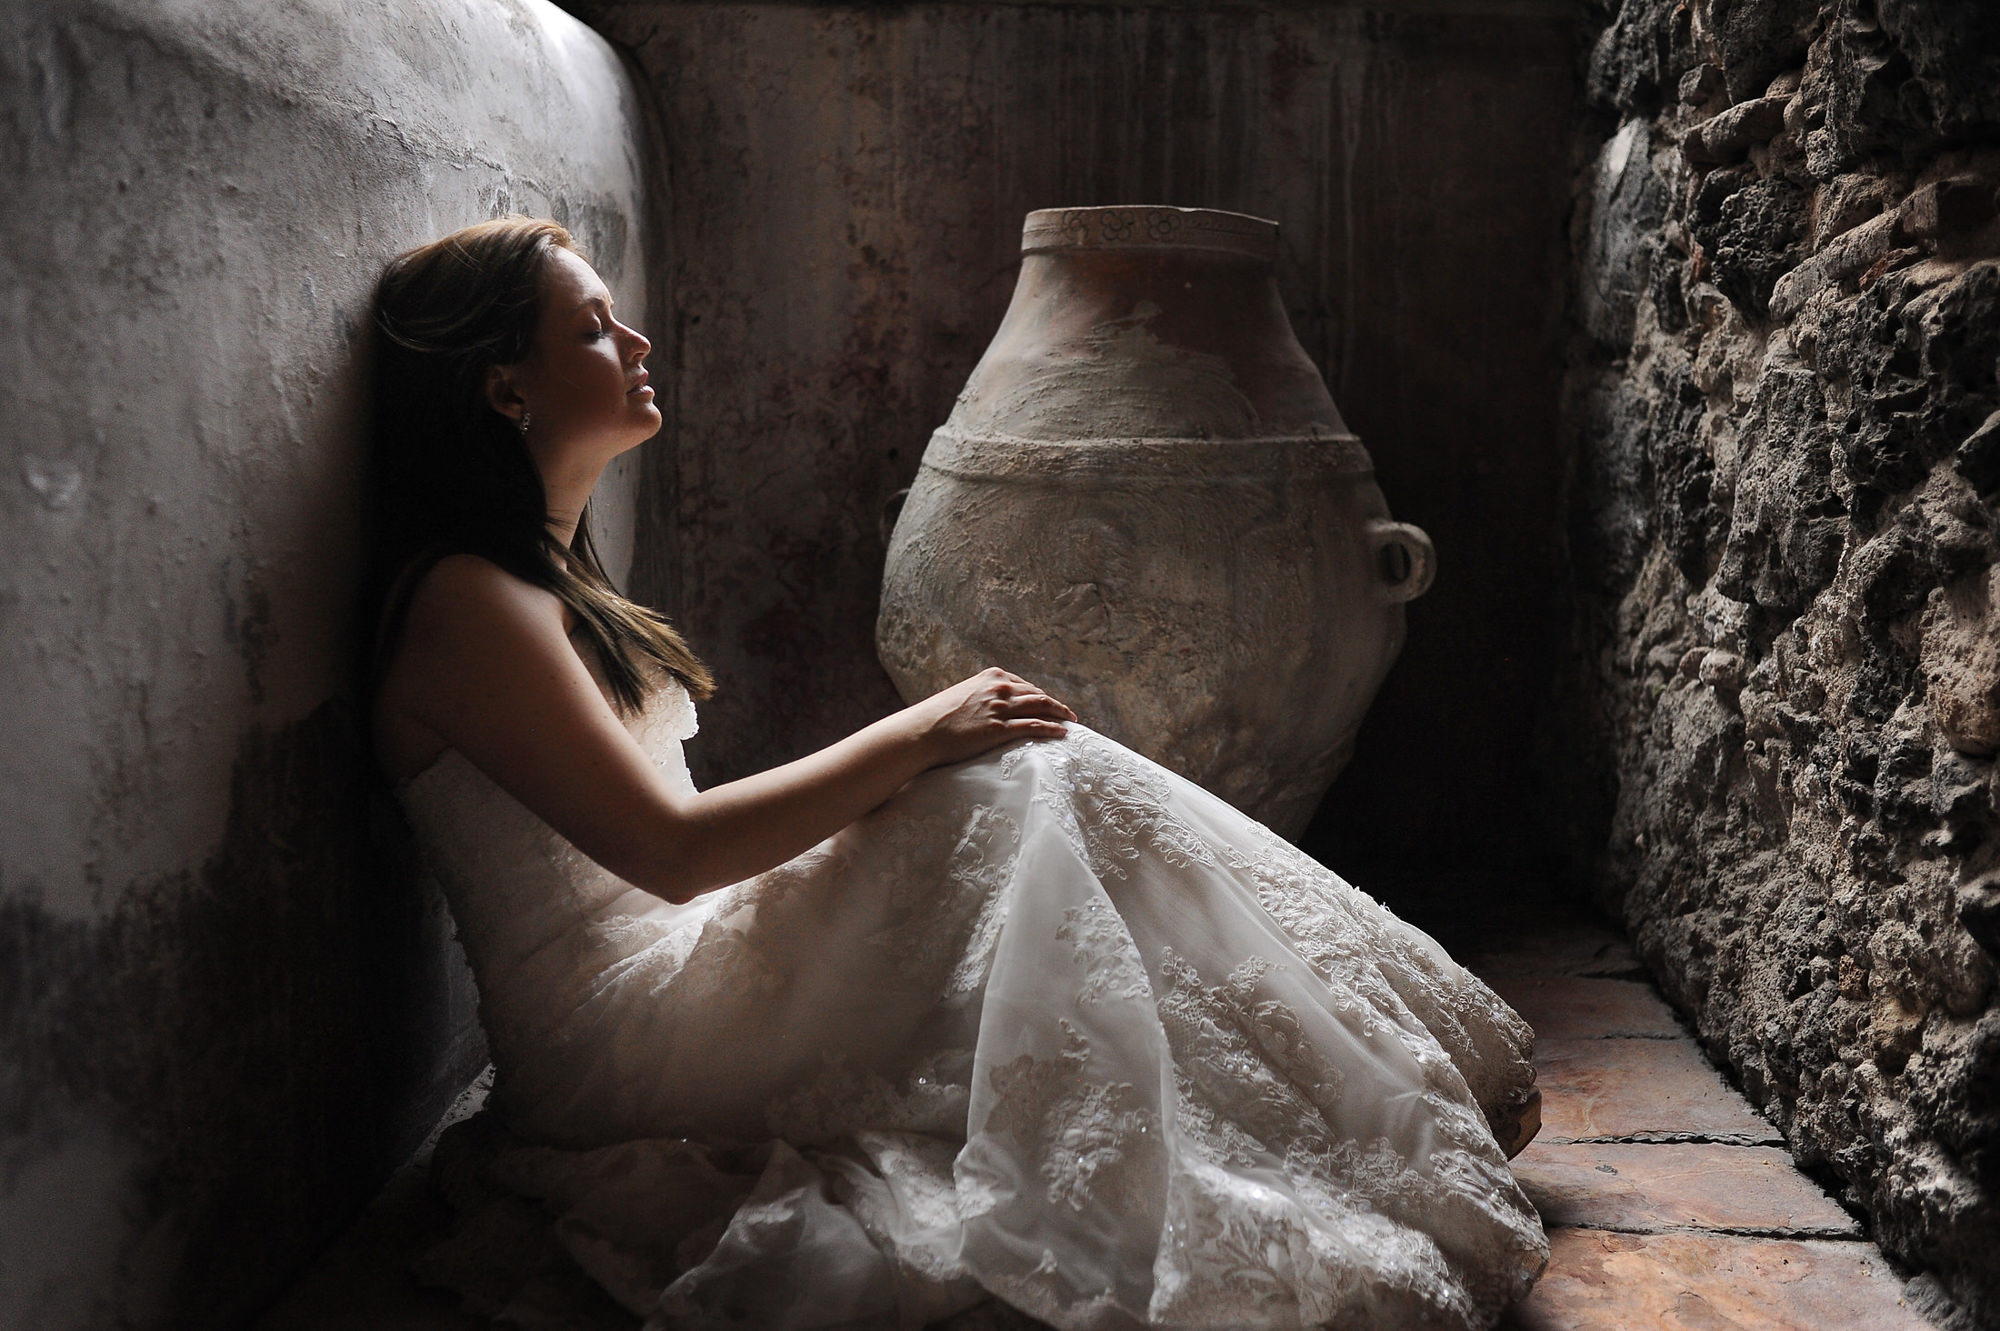 Bride resting in stone room - Daniel Aguilar Photographer